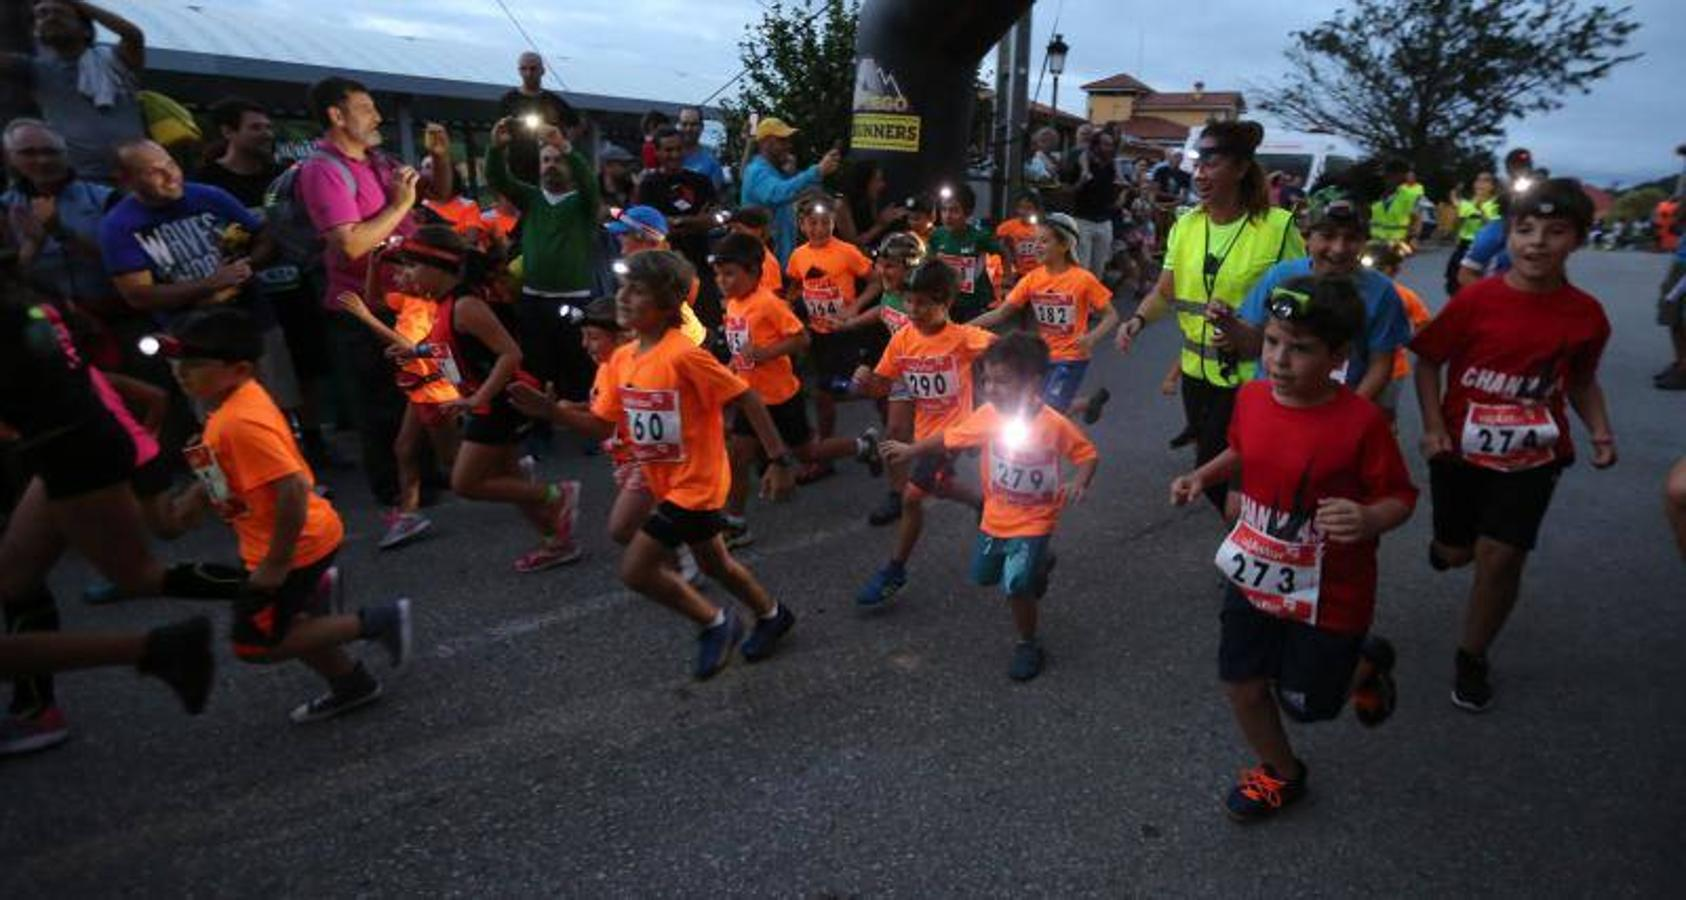 Carrera nocturna 'Carrerillas'